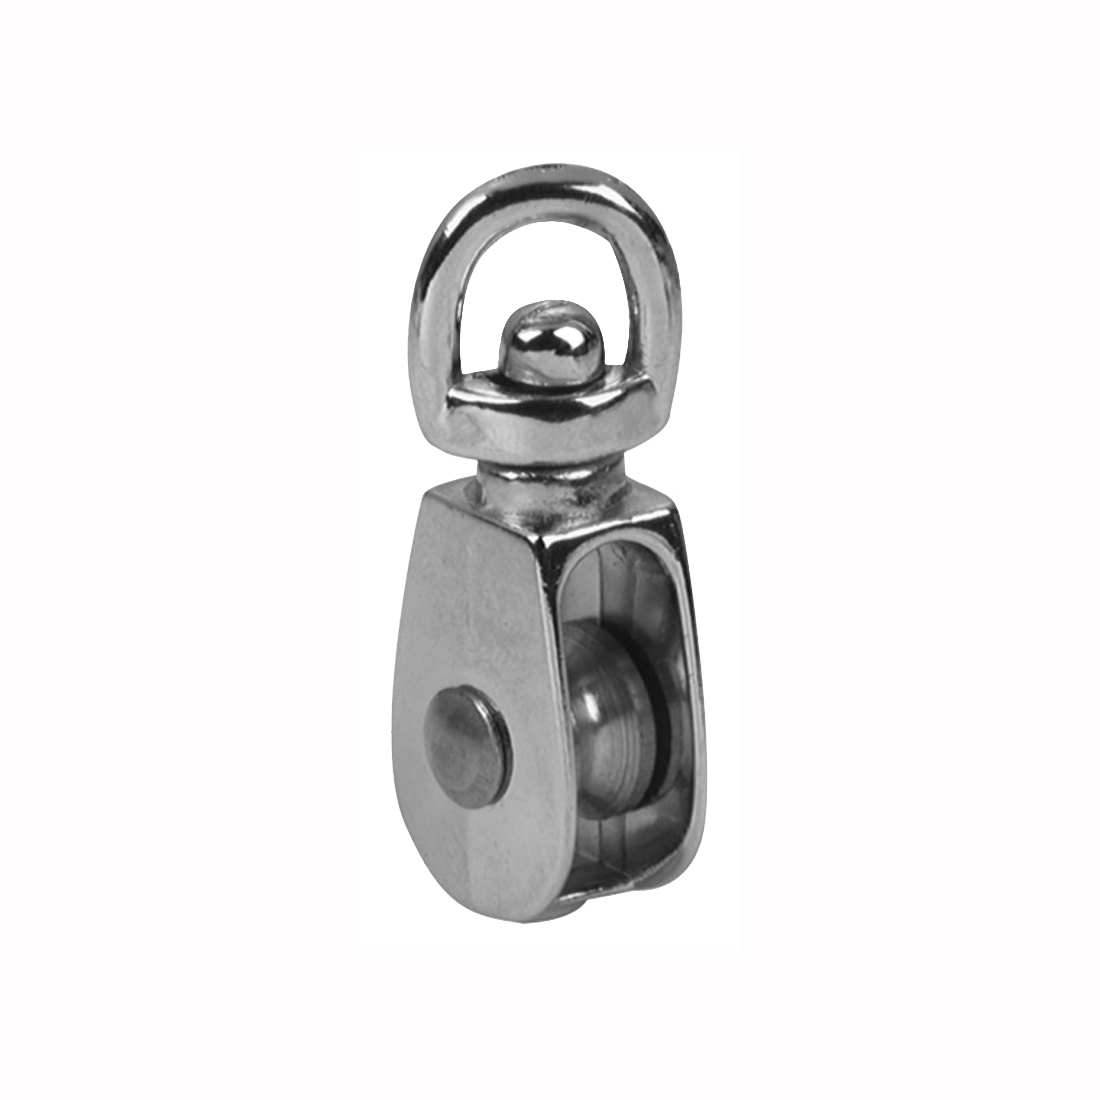 Picture of BARON 0173ZD-3/4 Single Rope Pulley, 3/16 in Rope, 3/4 in Sheave, Cadmium